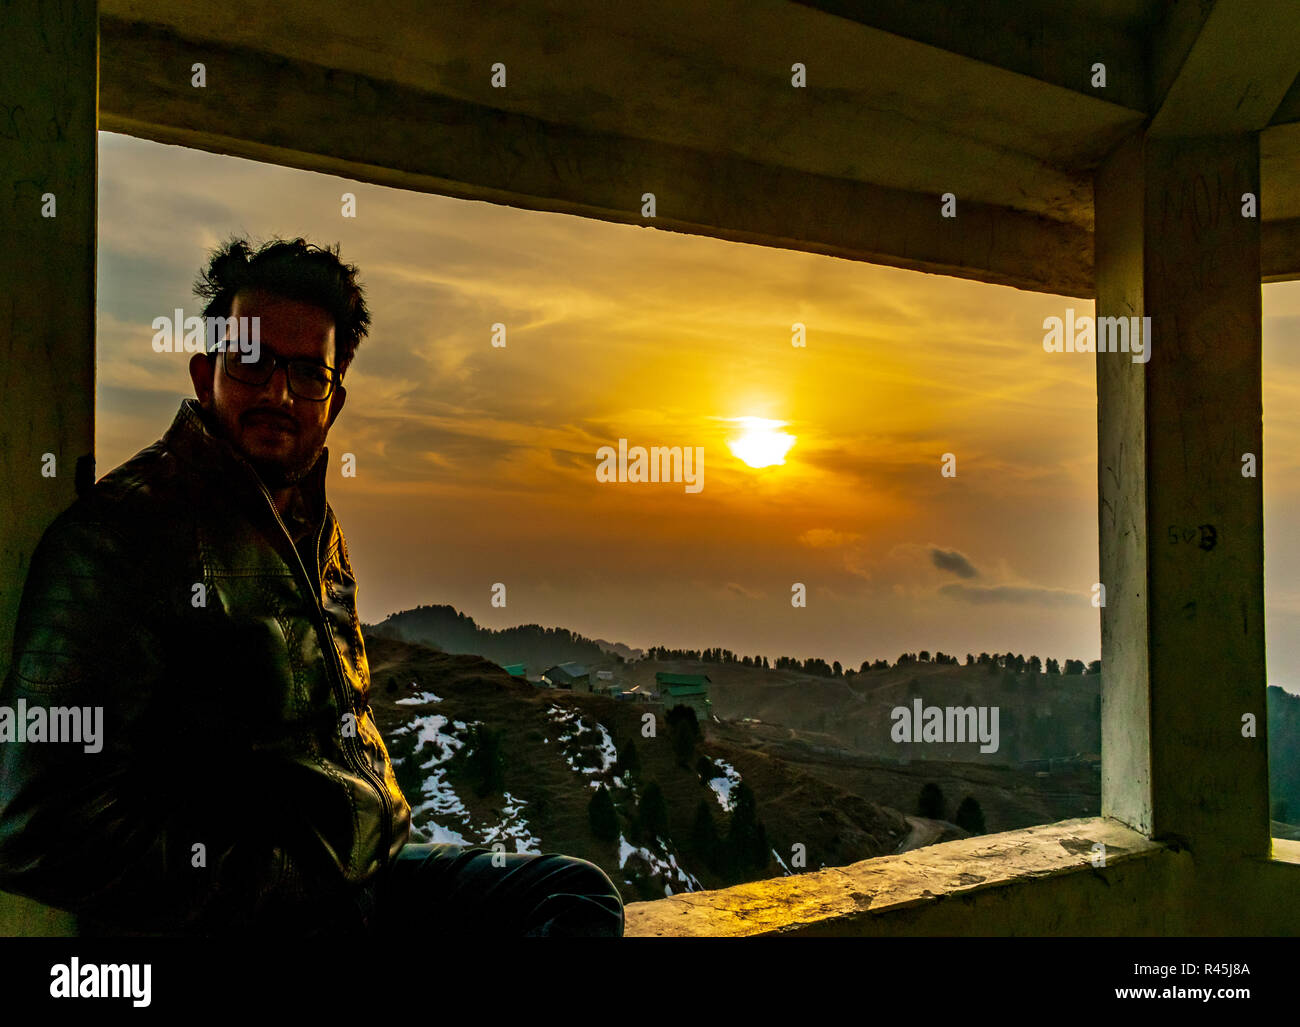 Dying embers of the setting sun- Dainkund Hills, self portrait, sunset sky in the background, from the top of the hill/ mountain, resting Stock Photo